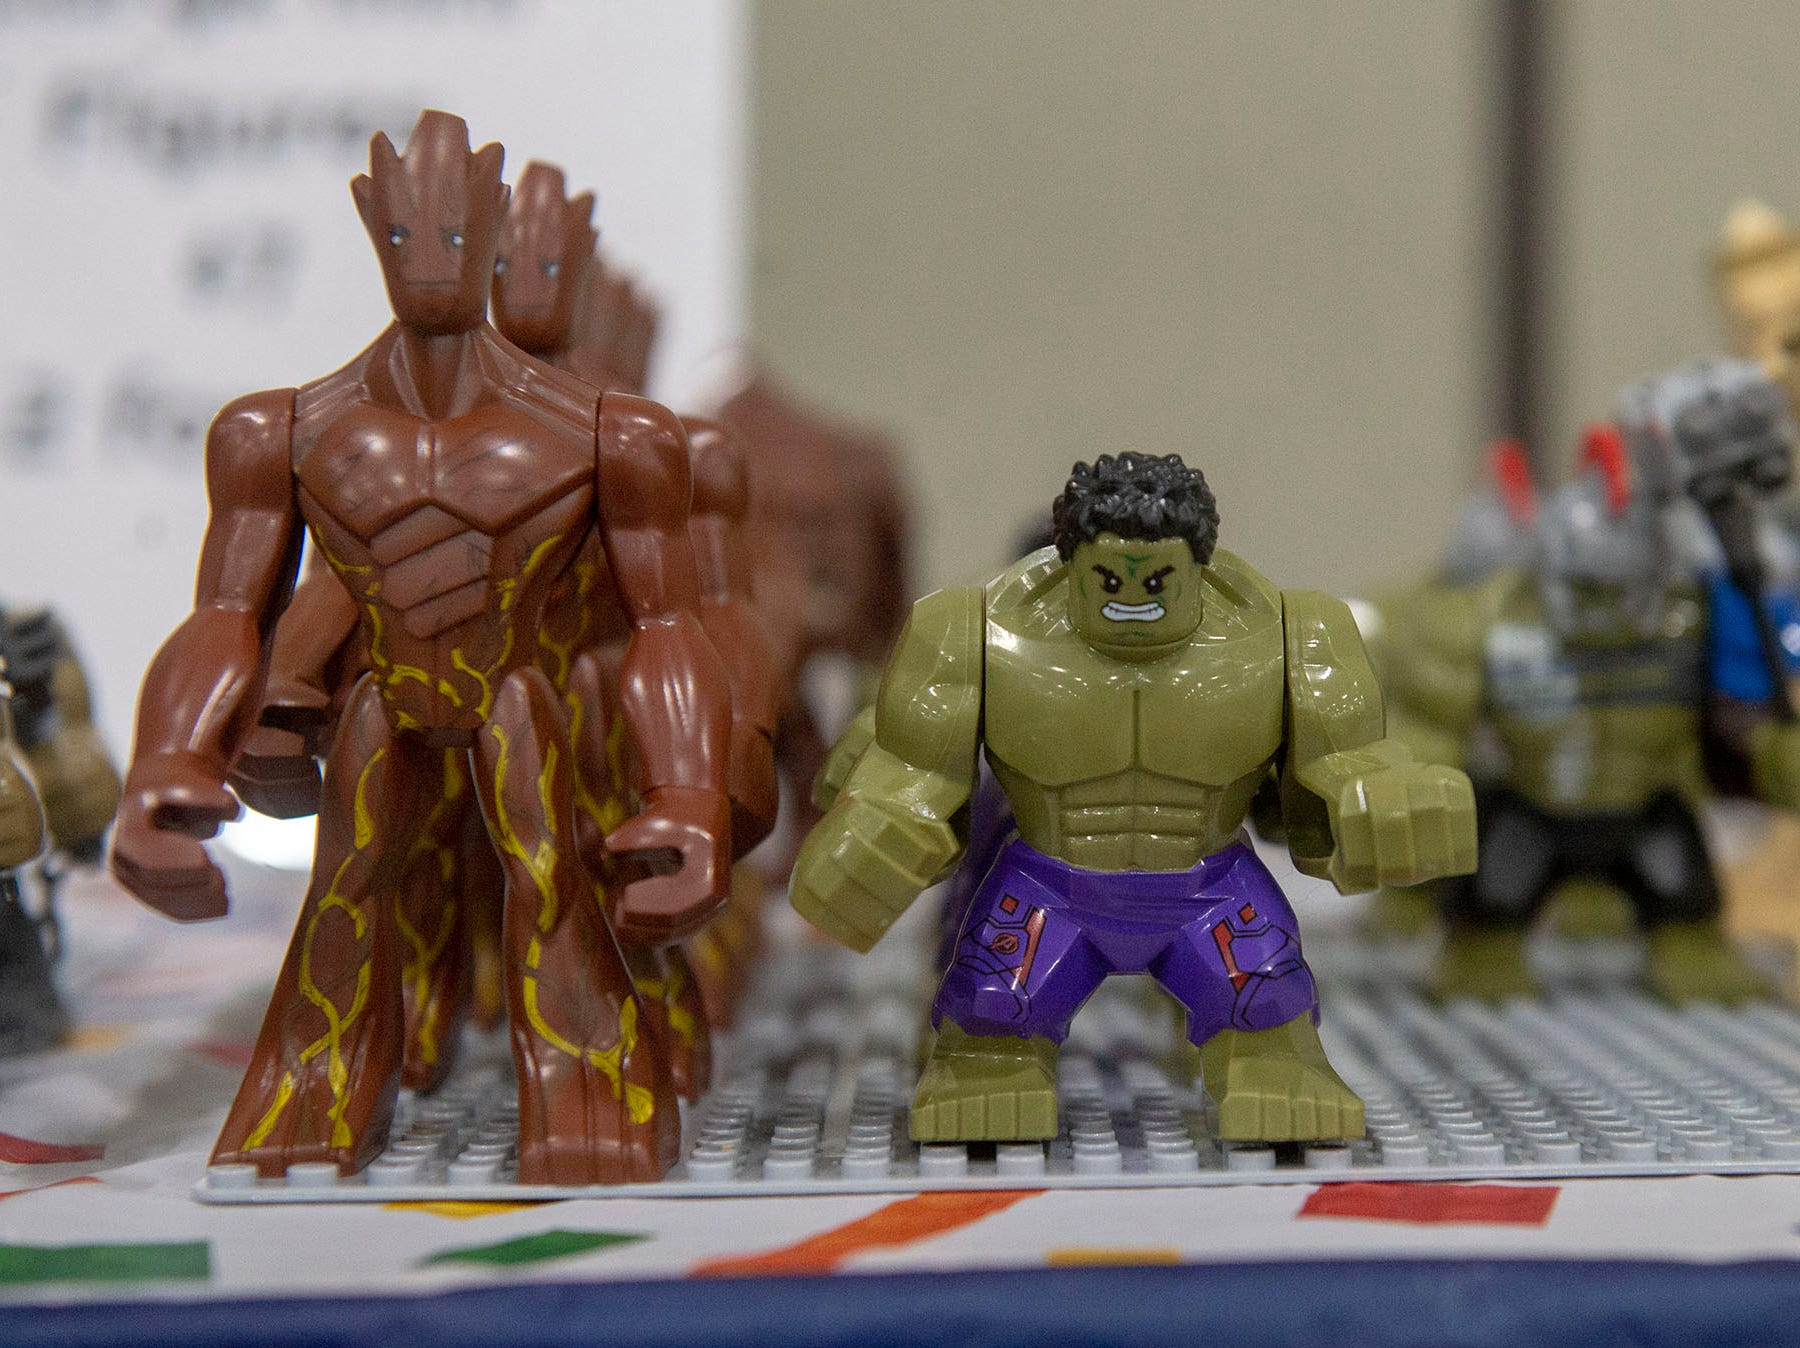 Looking for action figures? There is a wide variety for sale at the White Rose Comic Con, which runs through Sunday, March 24, 2019 at Utz Arena of the York Fairgrounds.